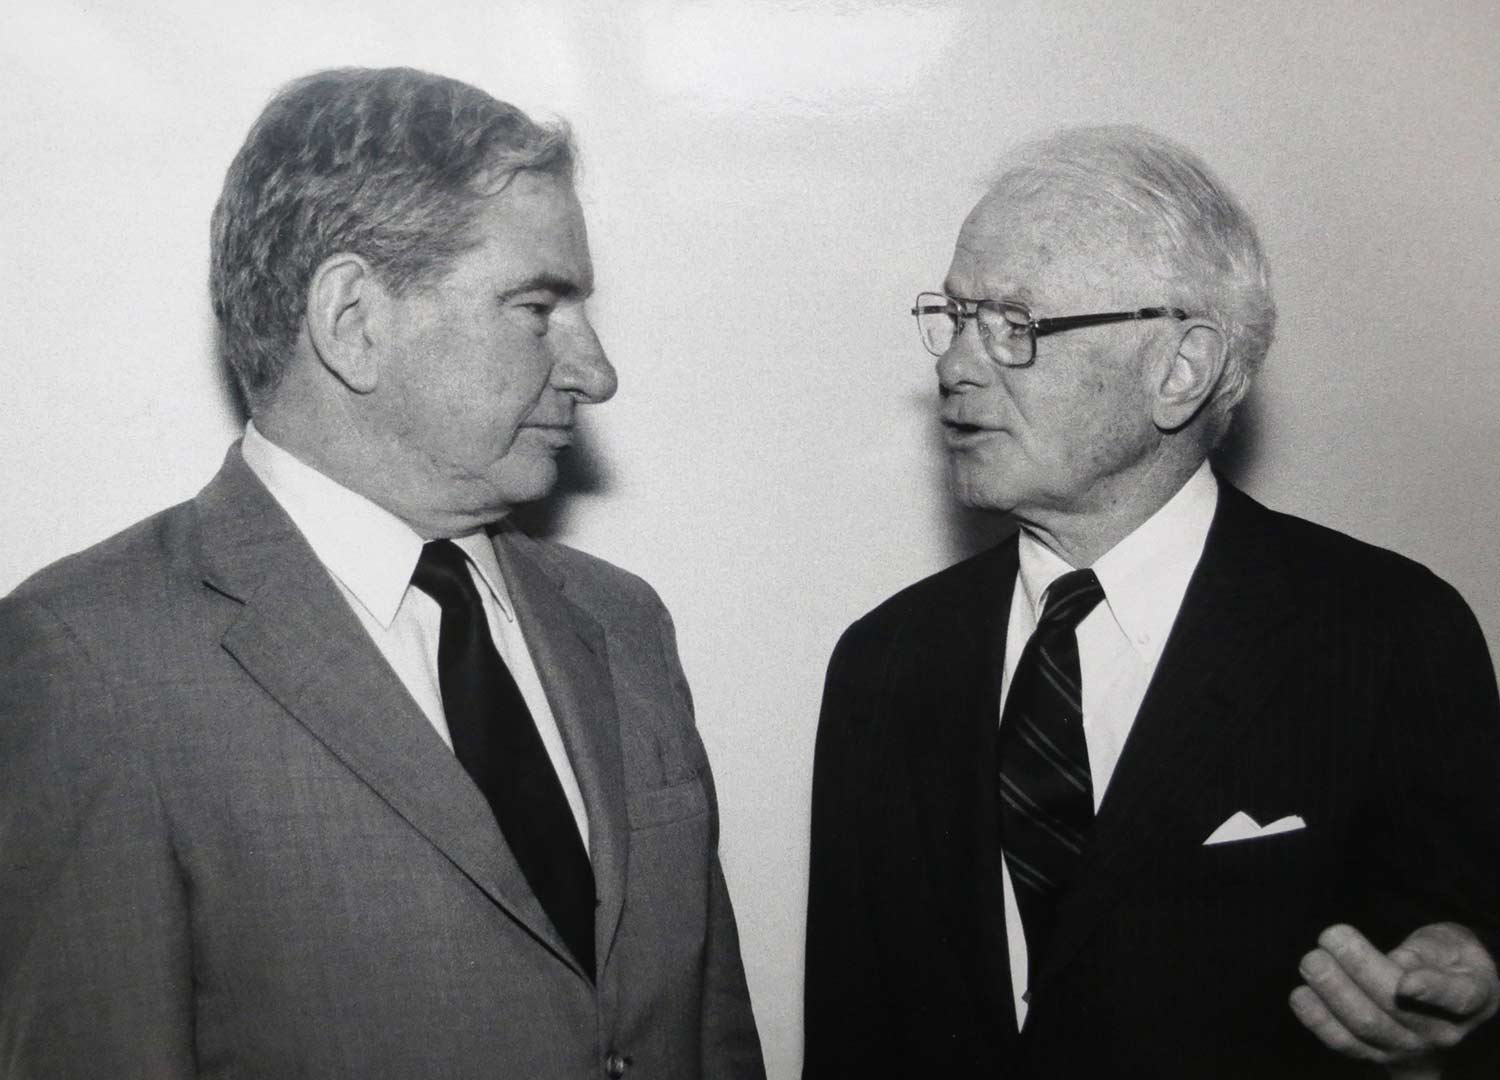 Kinney here is pictured with then-President Hedley Reynolds, c. 1980. Kinney's national connections to philanthropic organizations played a key part in Bates securing funding for the Olin Arts Center. Photograph by Frank Siteman.